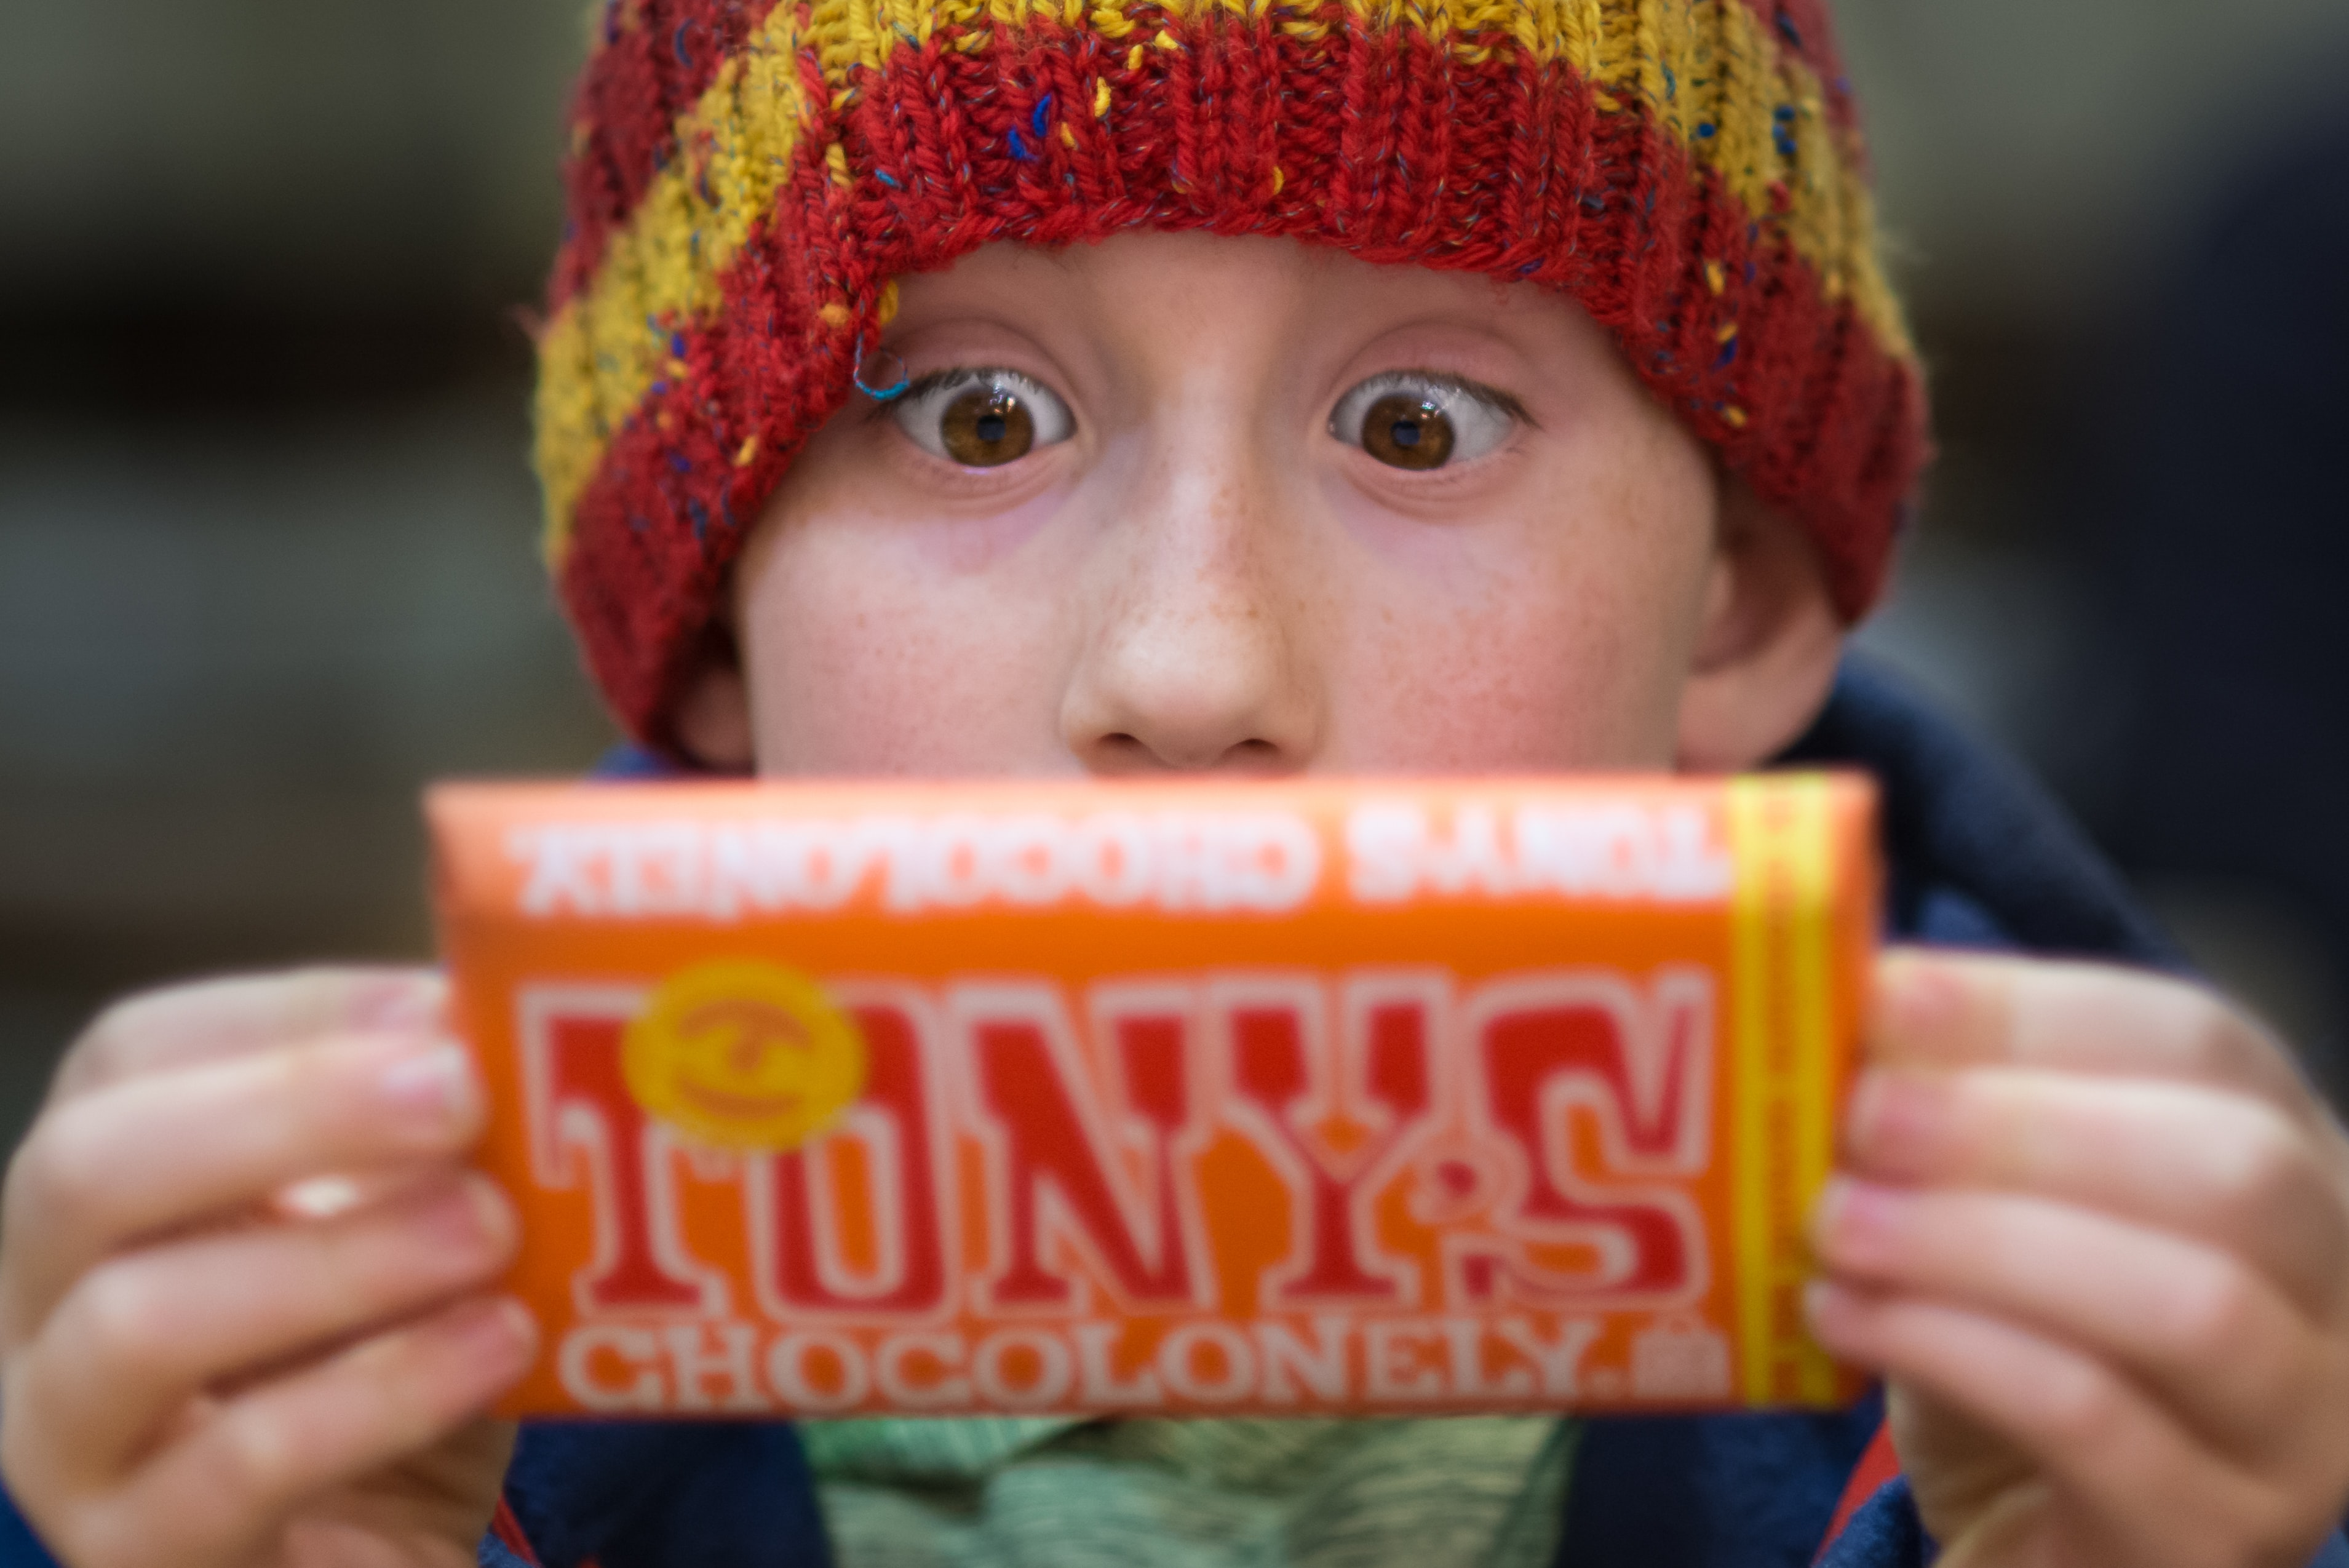 A little boy wearing a striped beanie reading the label of a chocolate bar in Portland